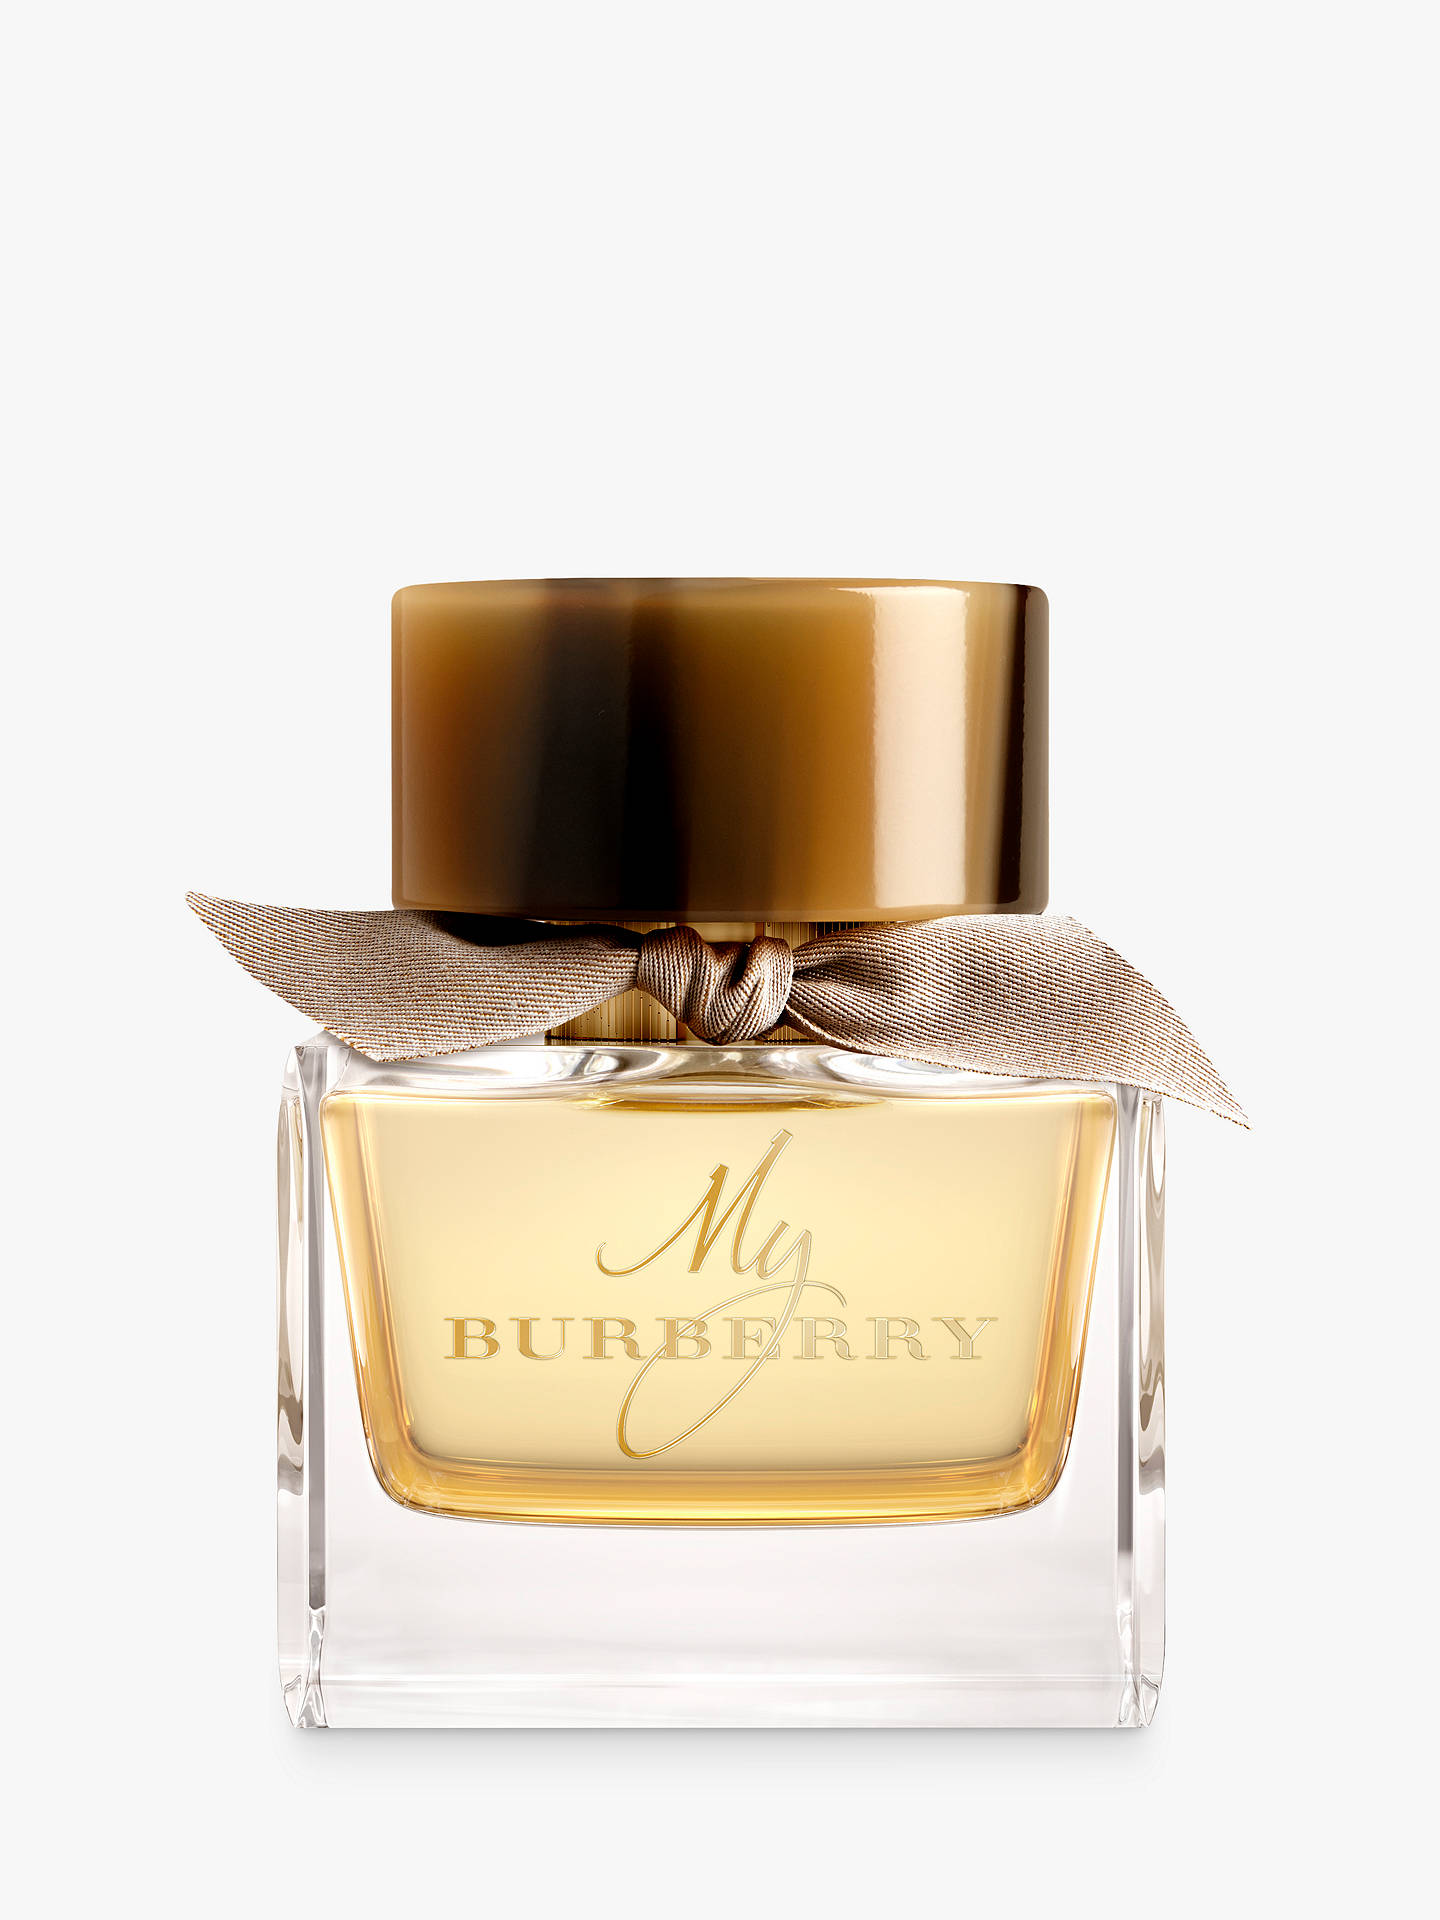 BuyBurberry My Burberry Eau de Parfum, 50ml Online at johnlewis.com